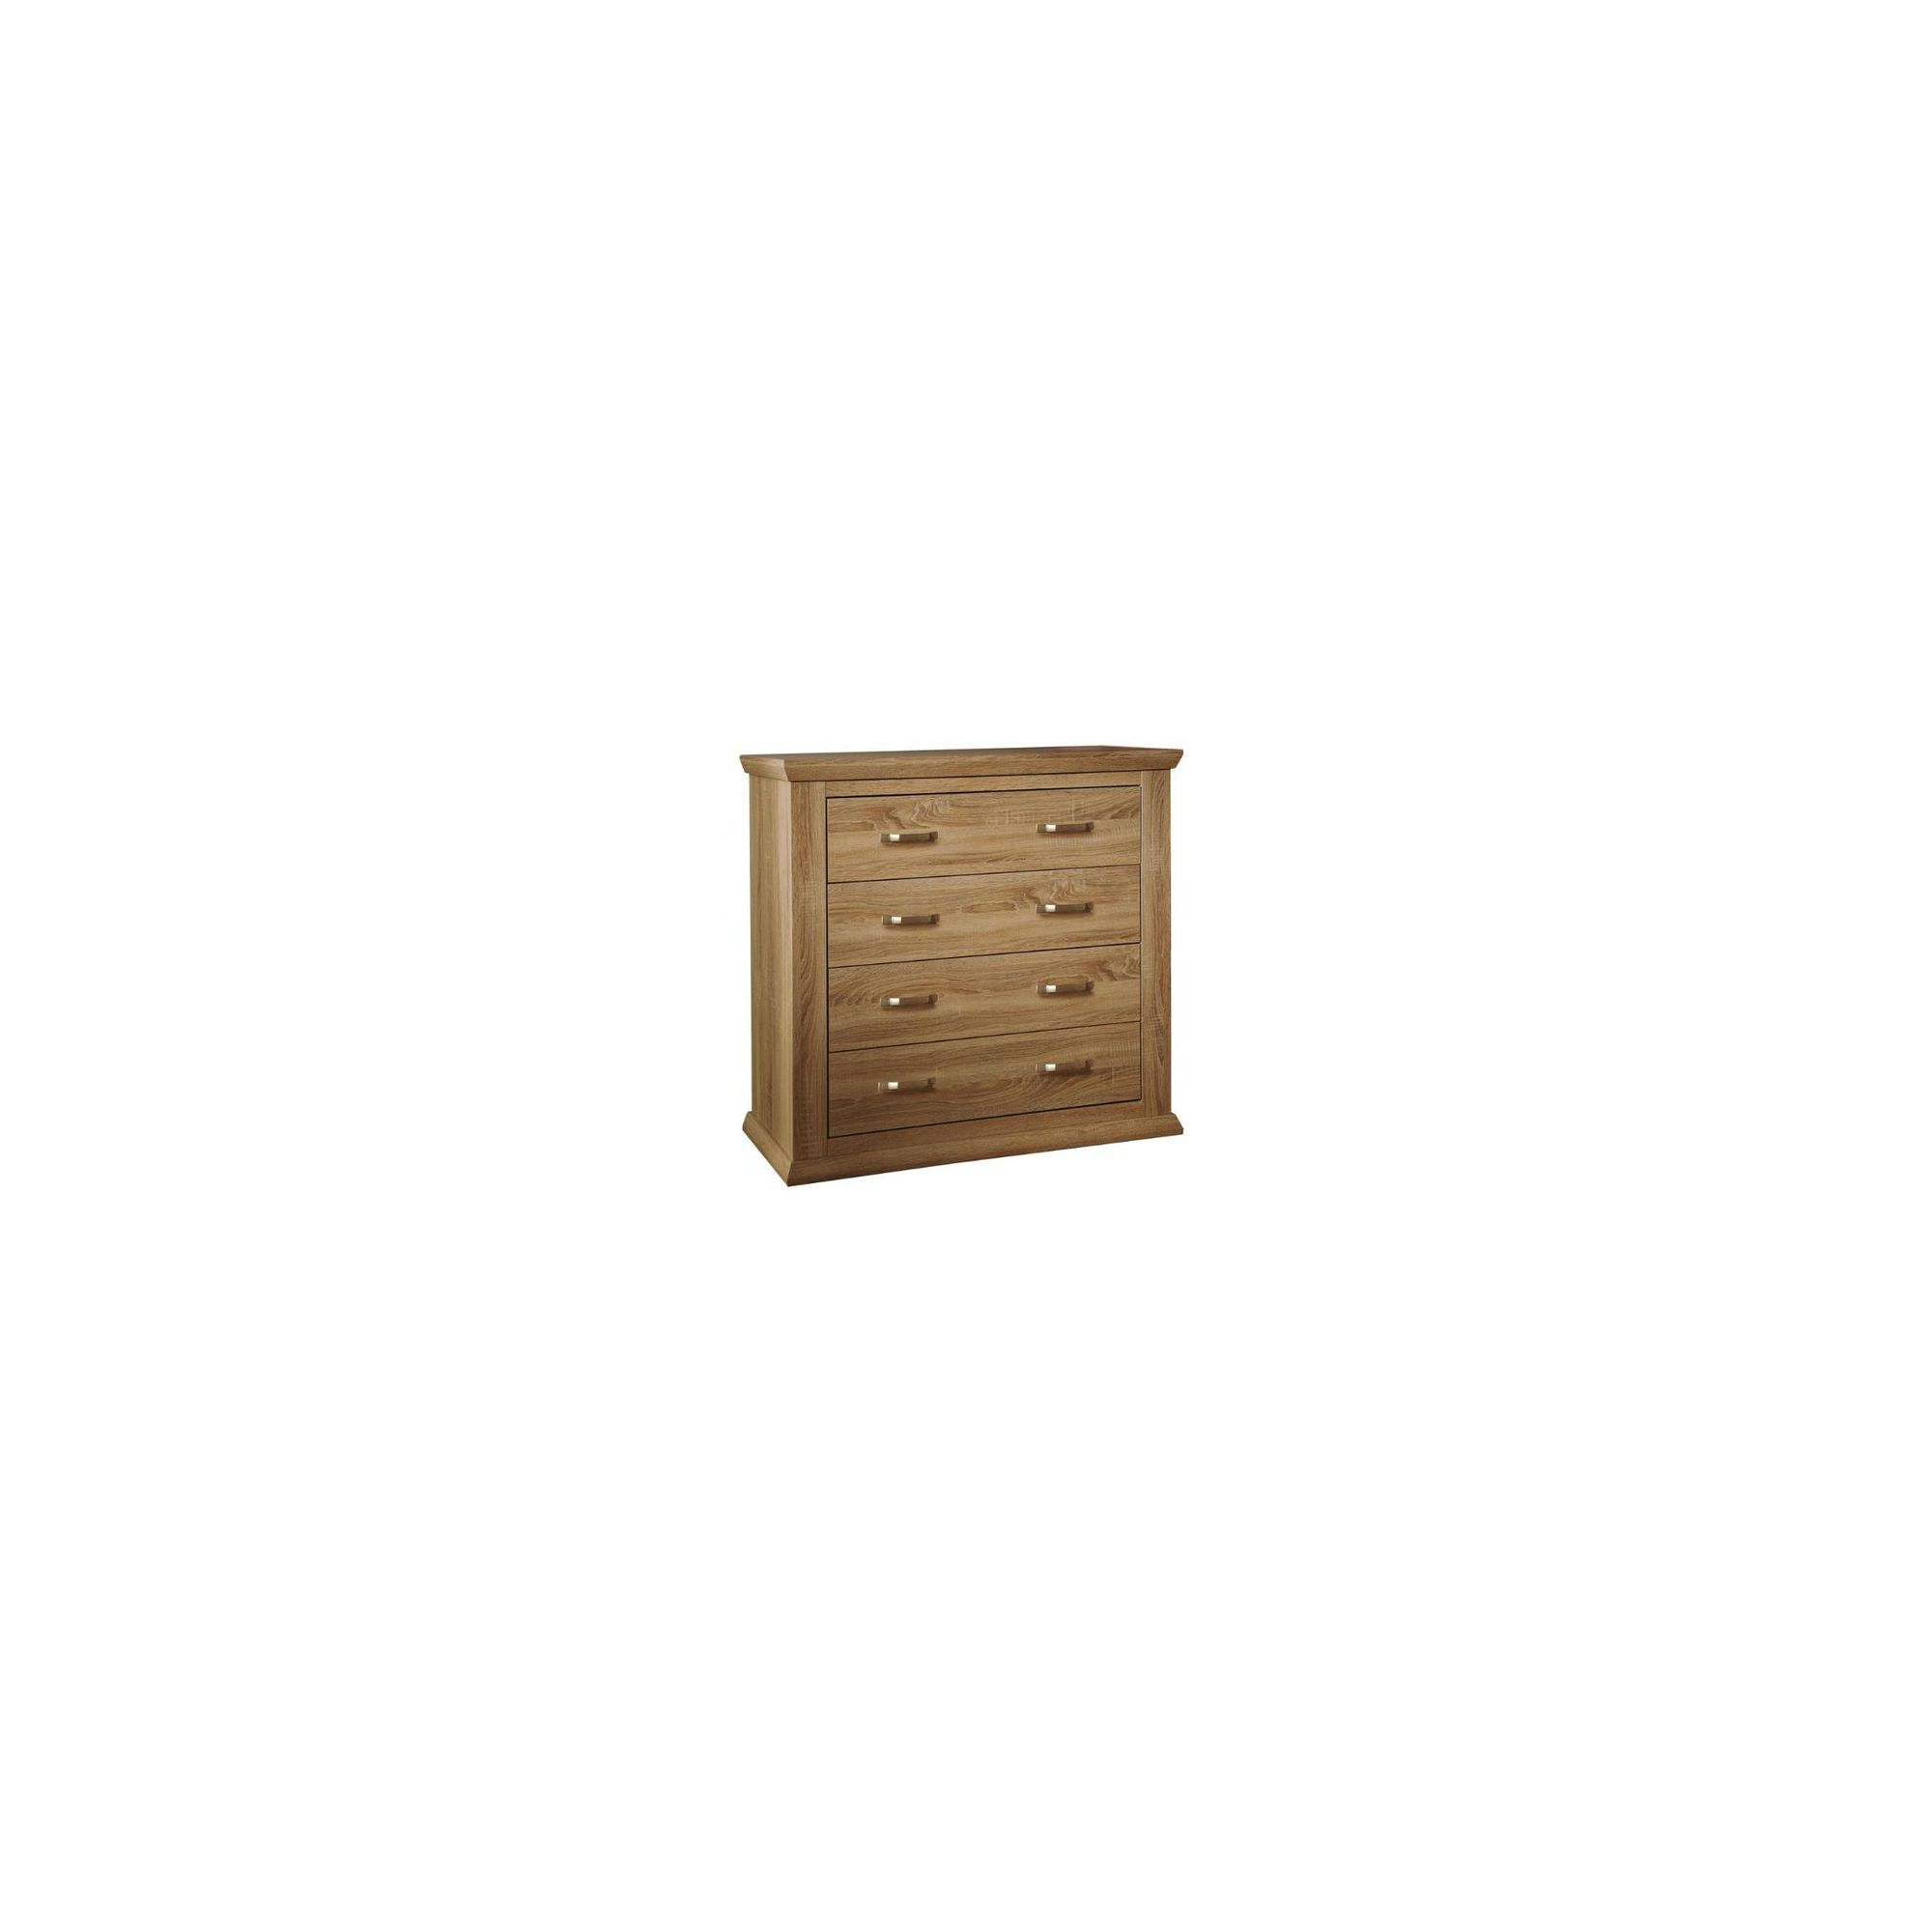 Urbane Designs Warwick 4 Drawer Chest at Tesco Direct